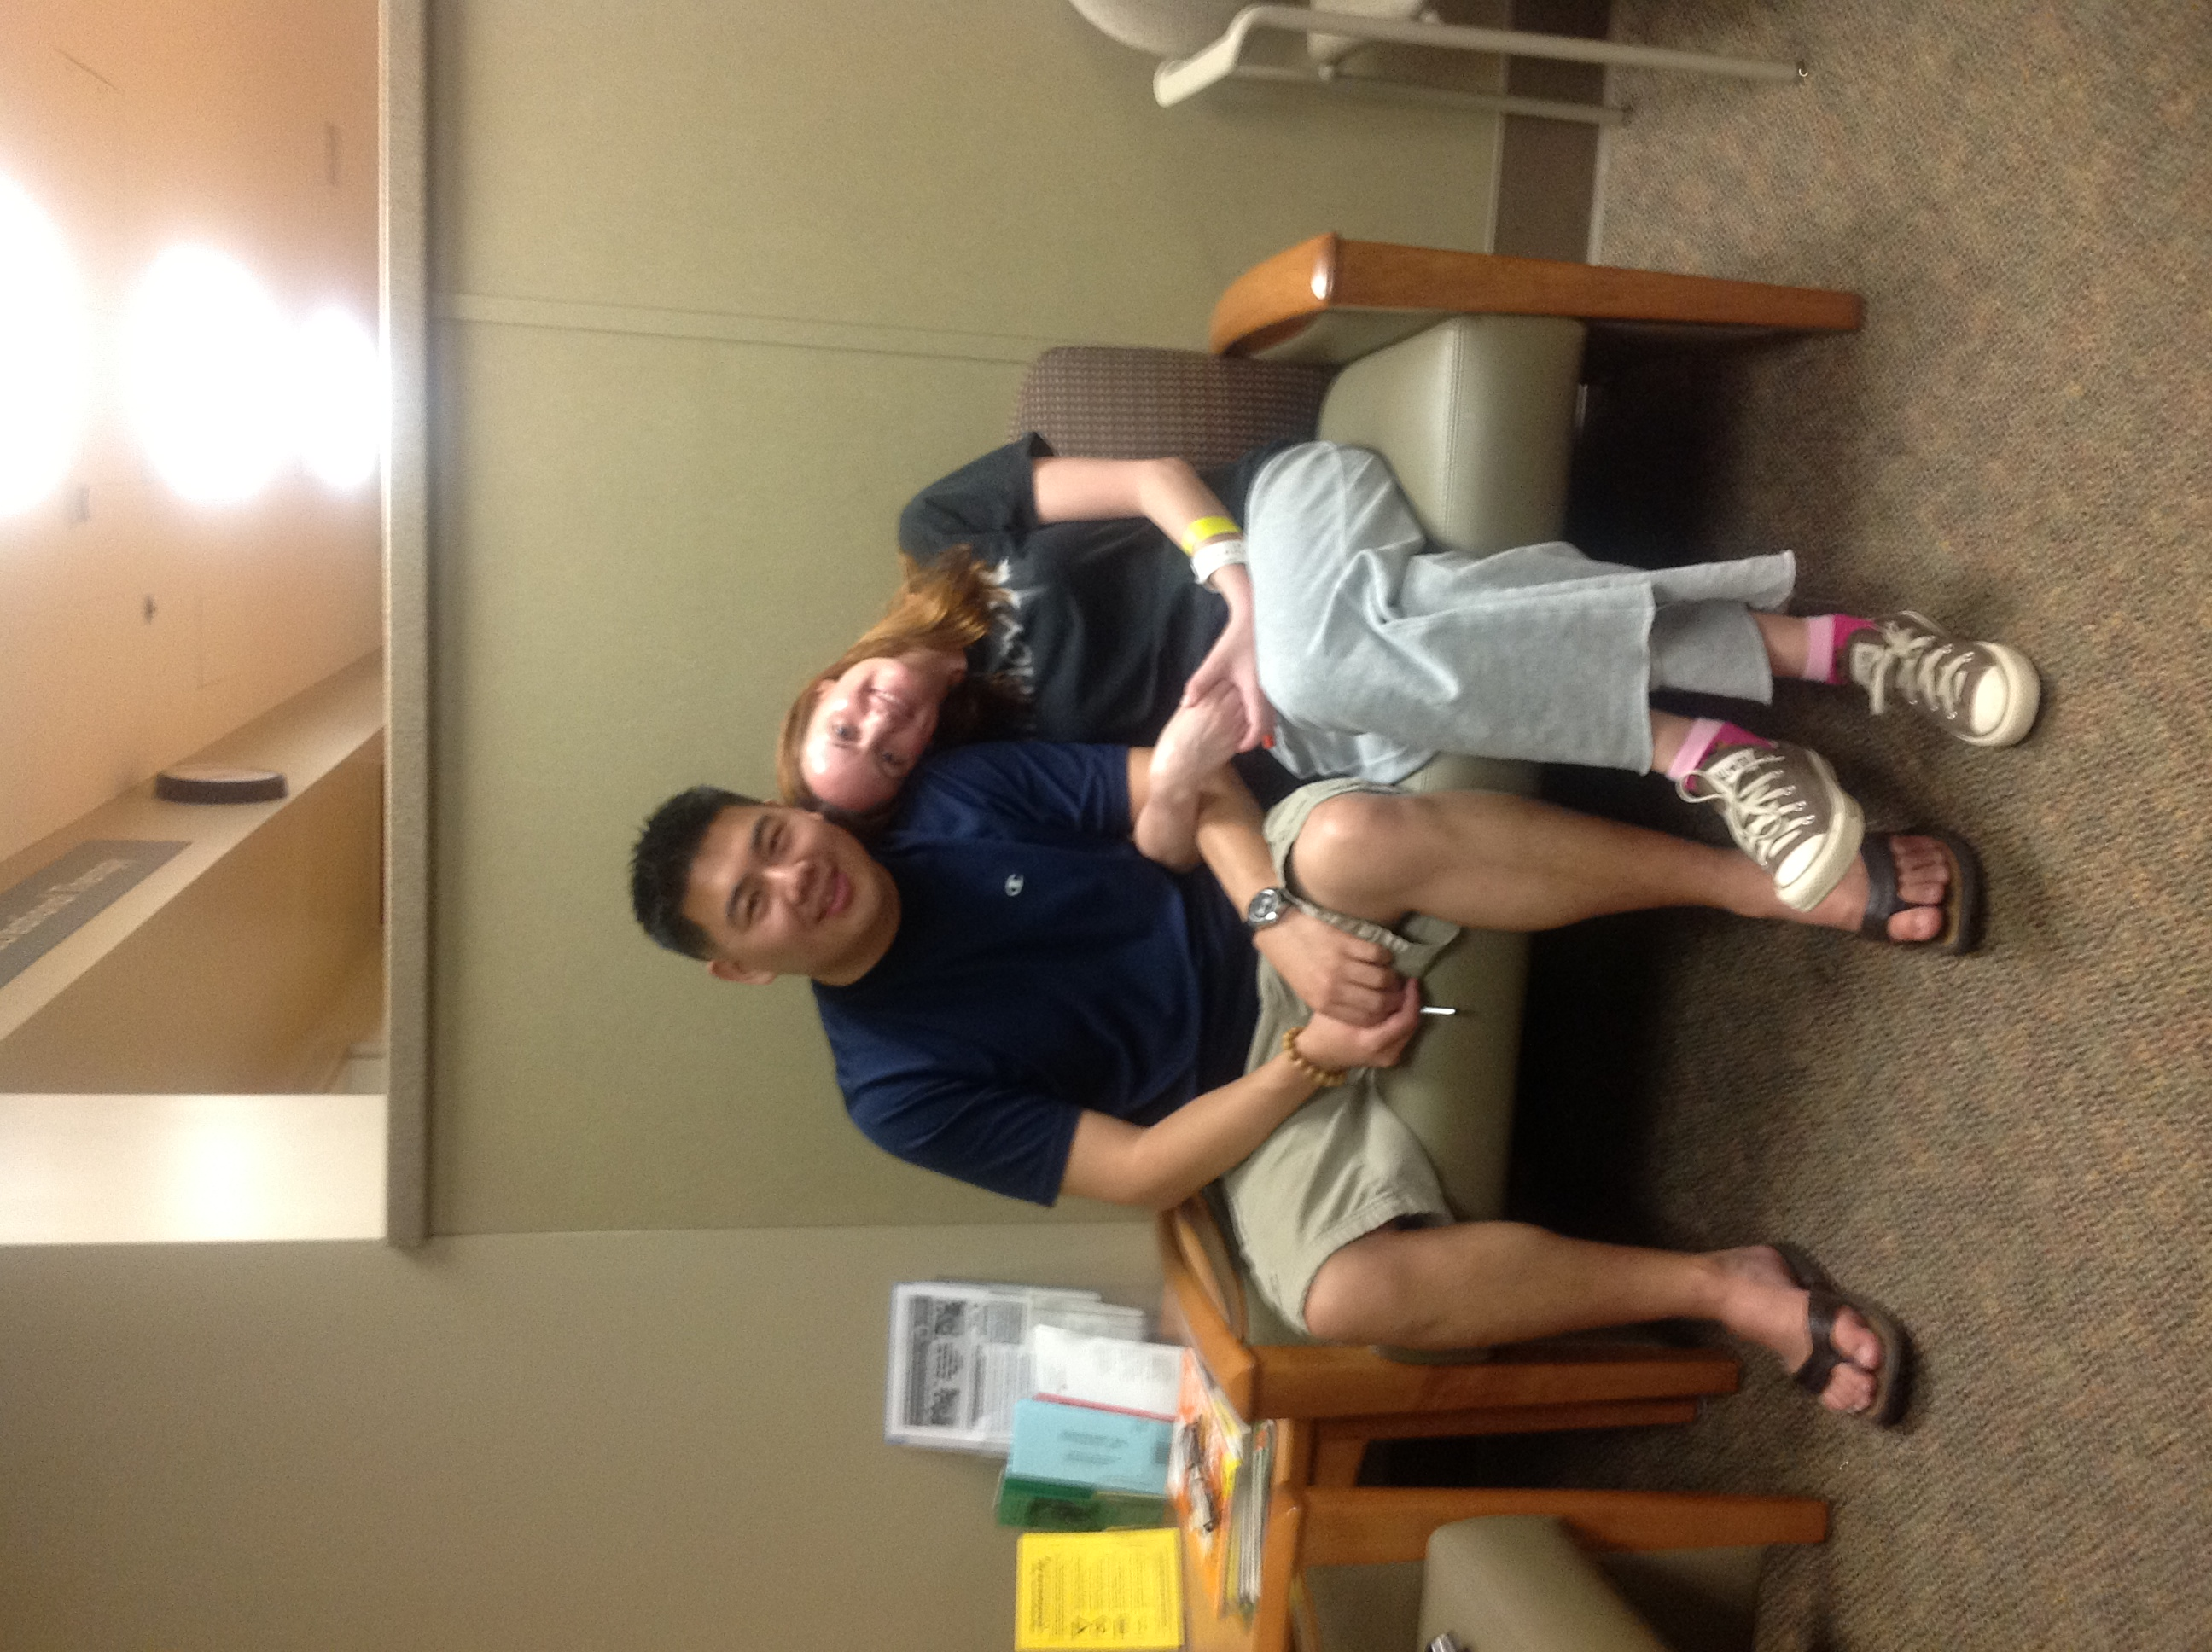 March 2012 - My good friend, Frank, came to visit me in rehab